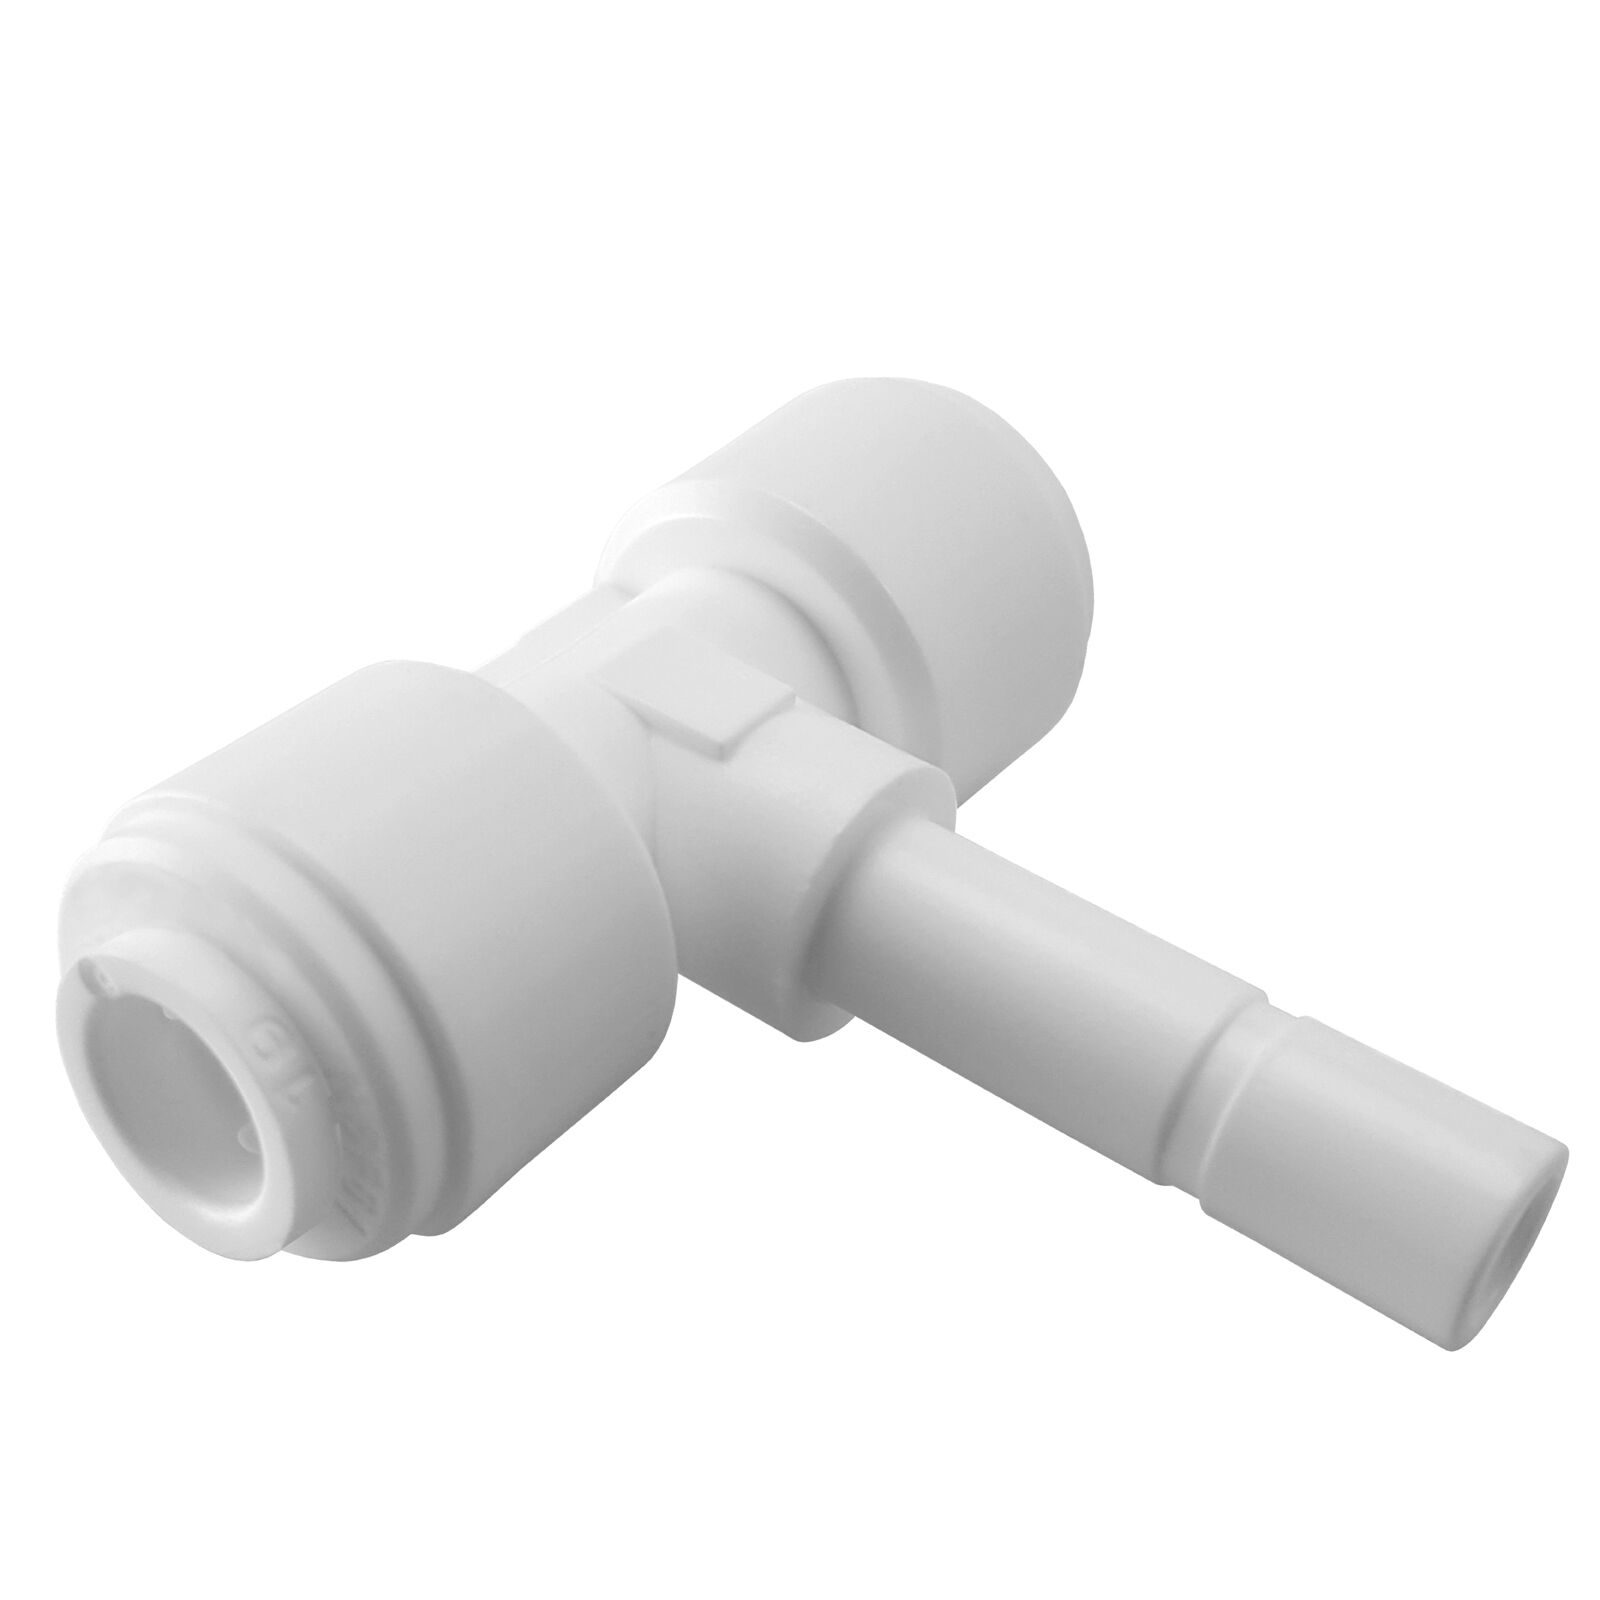 Express Water Stem Branch Tee 1 4  Fitting Connection Water Filters   RO System